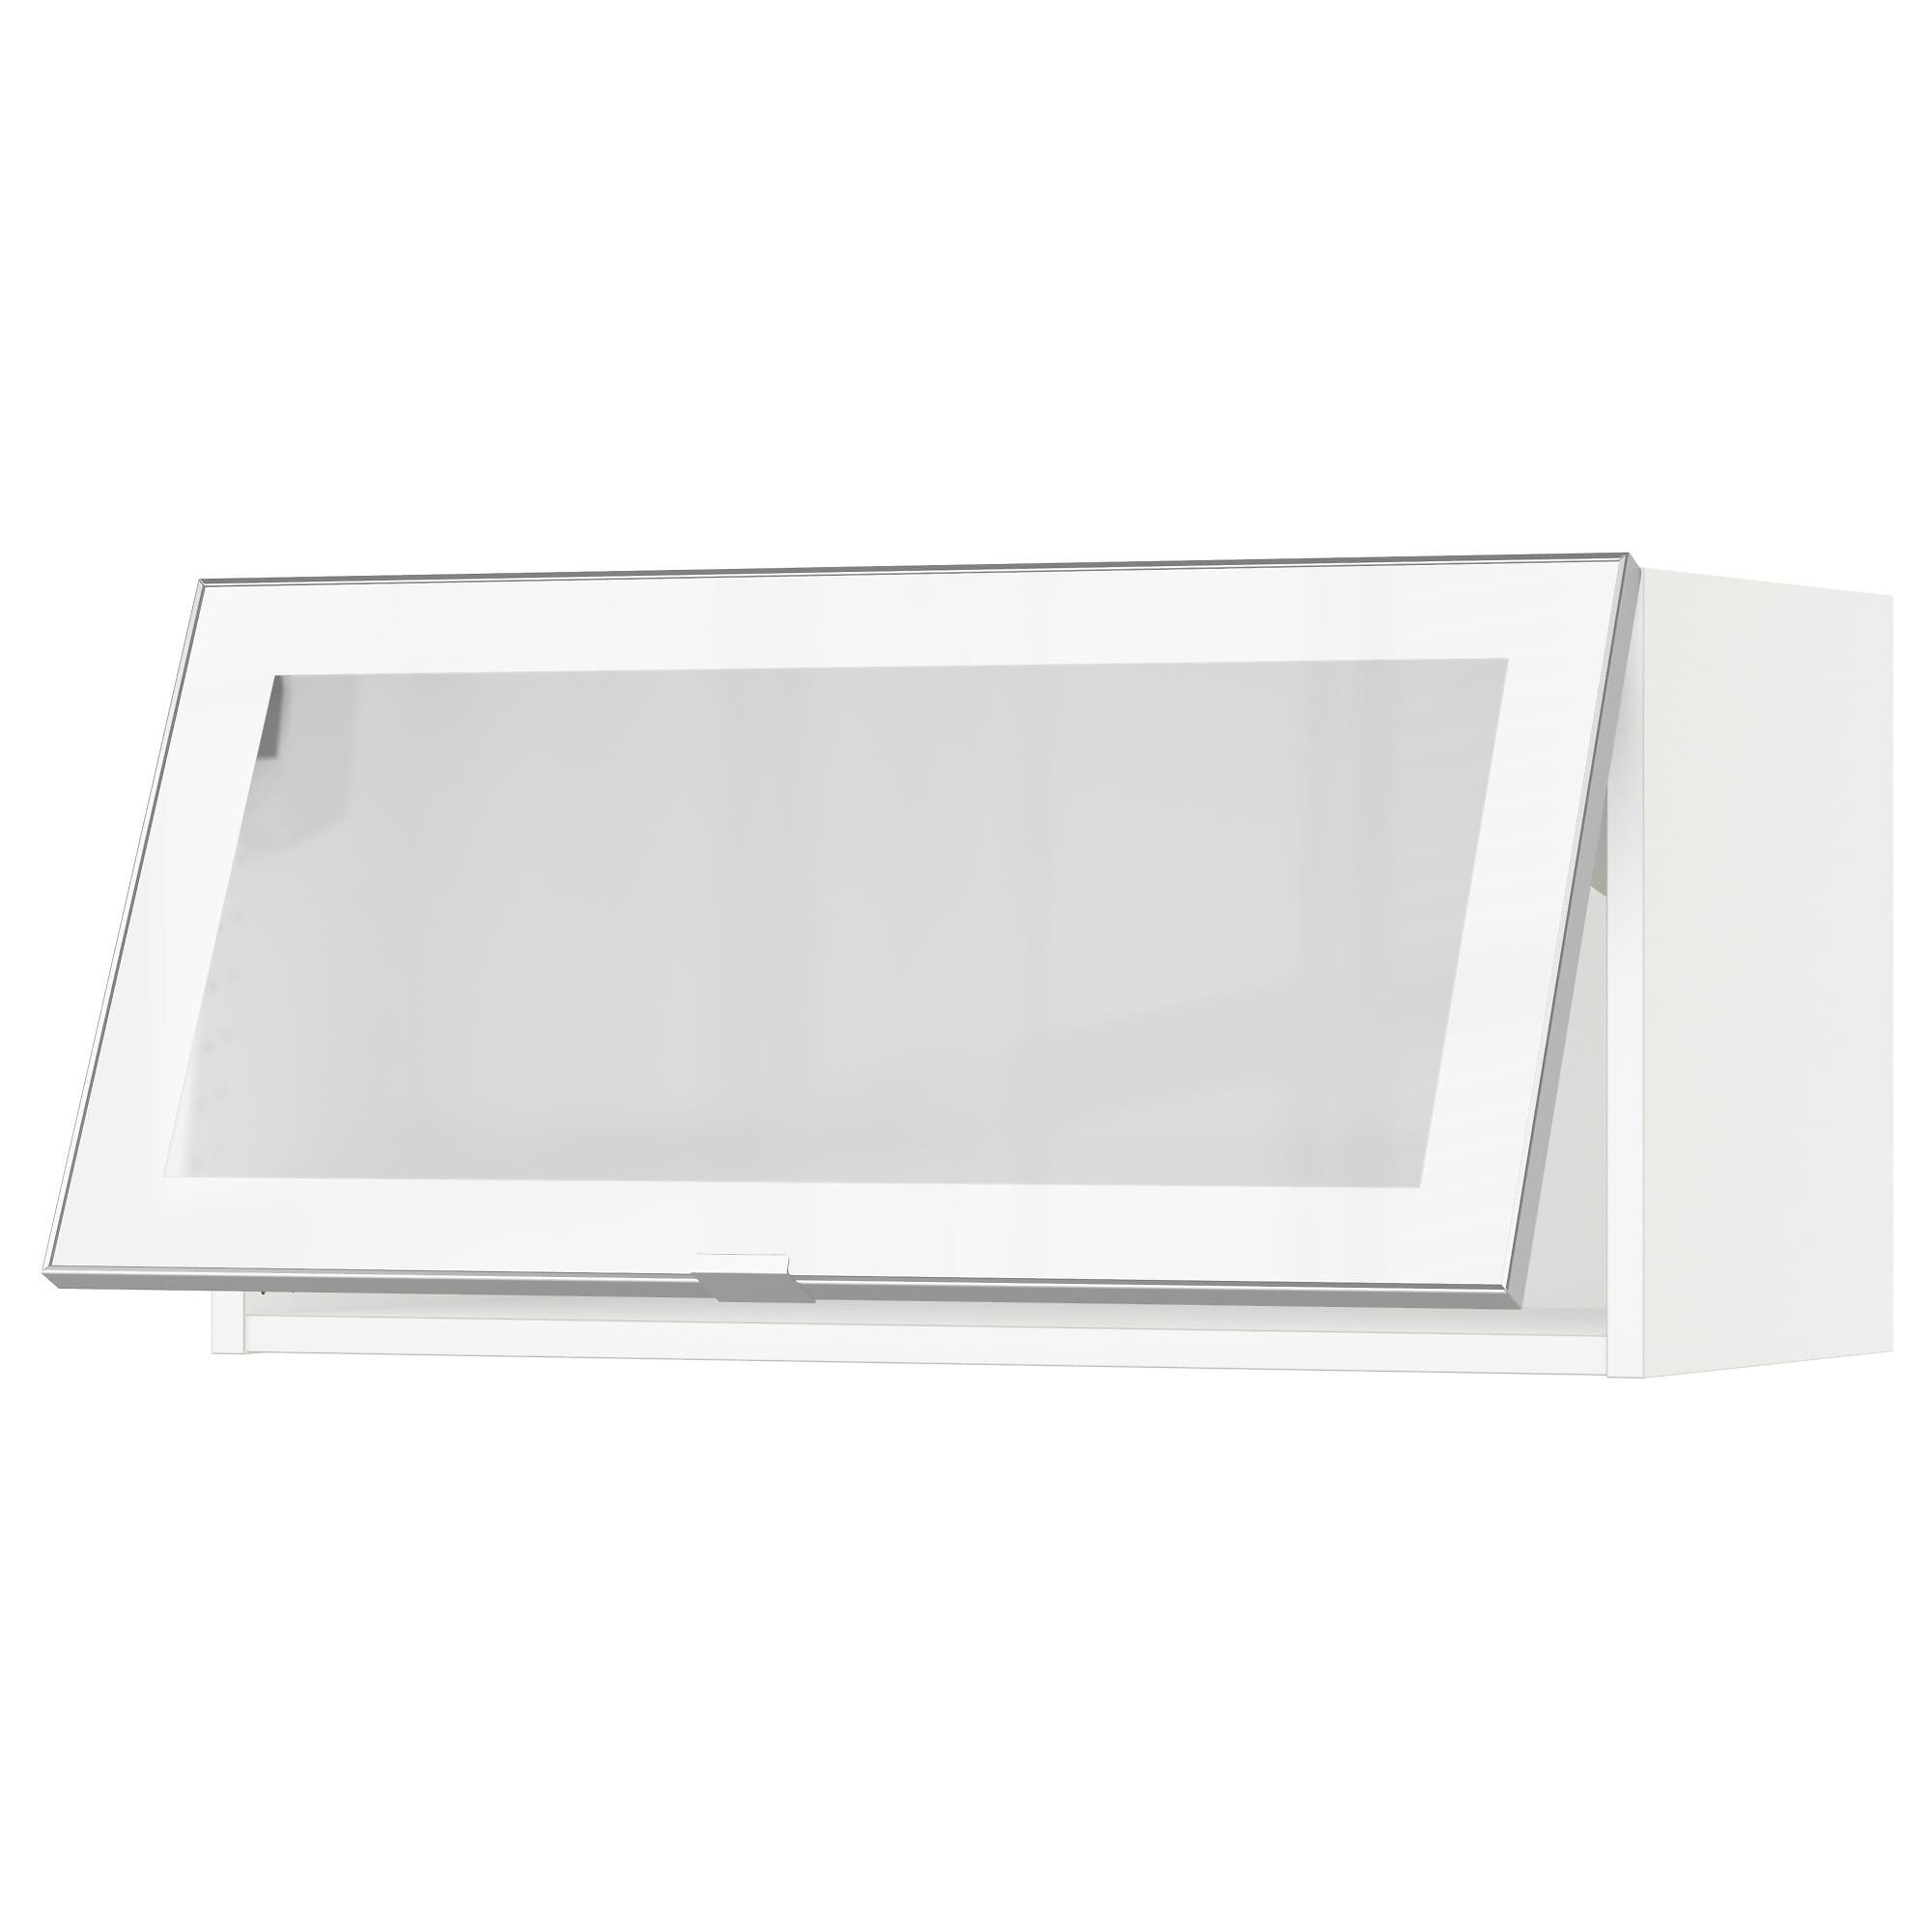 Ikea Sektion White Jutis Frosted Glass Horizontal Wall Cabinet Glass Door In 2020 Glass Door Ikea Wall Cabinets Ikea